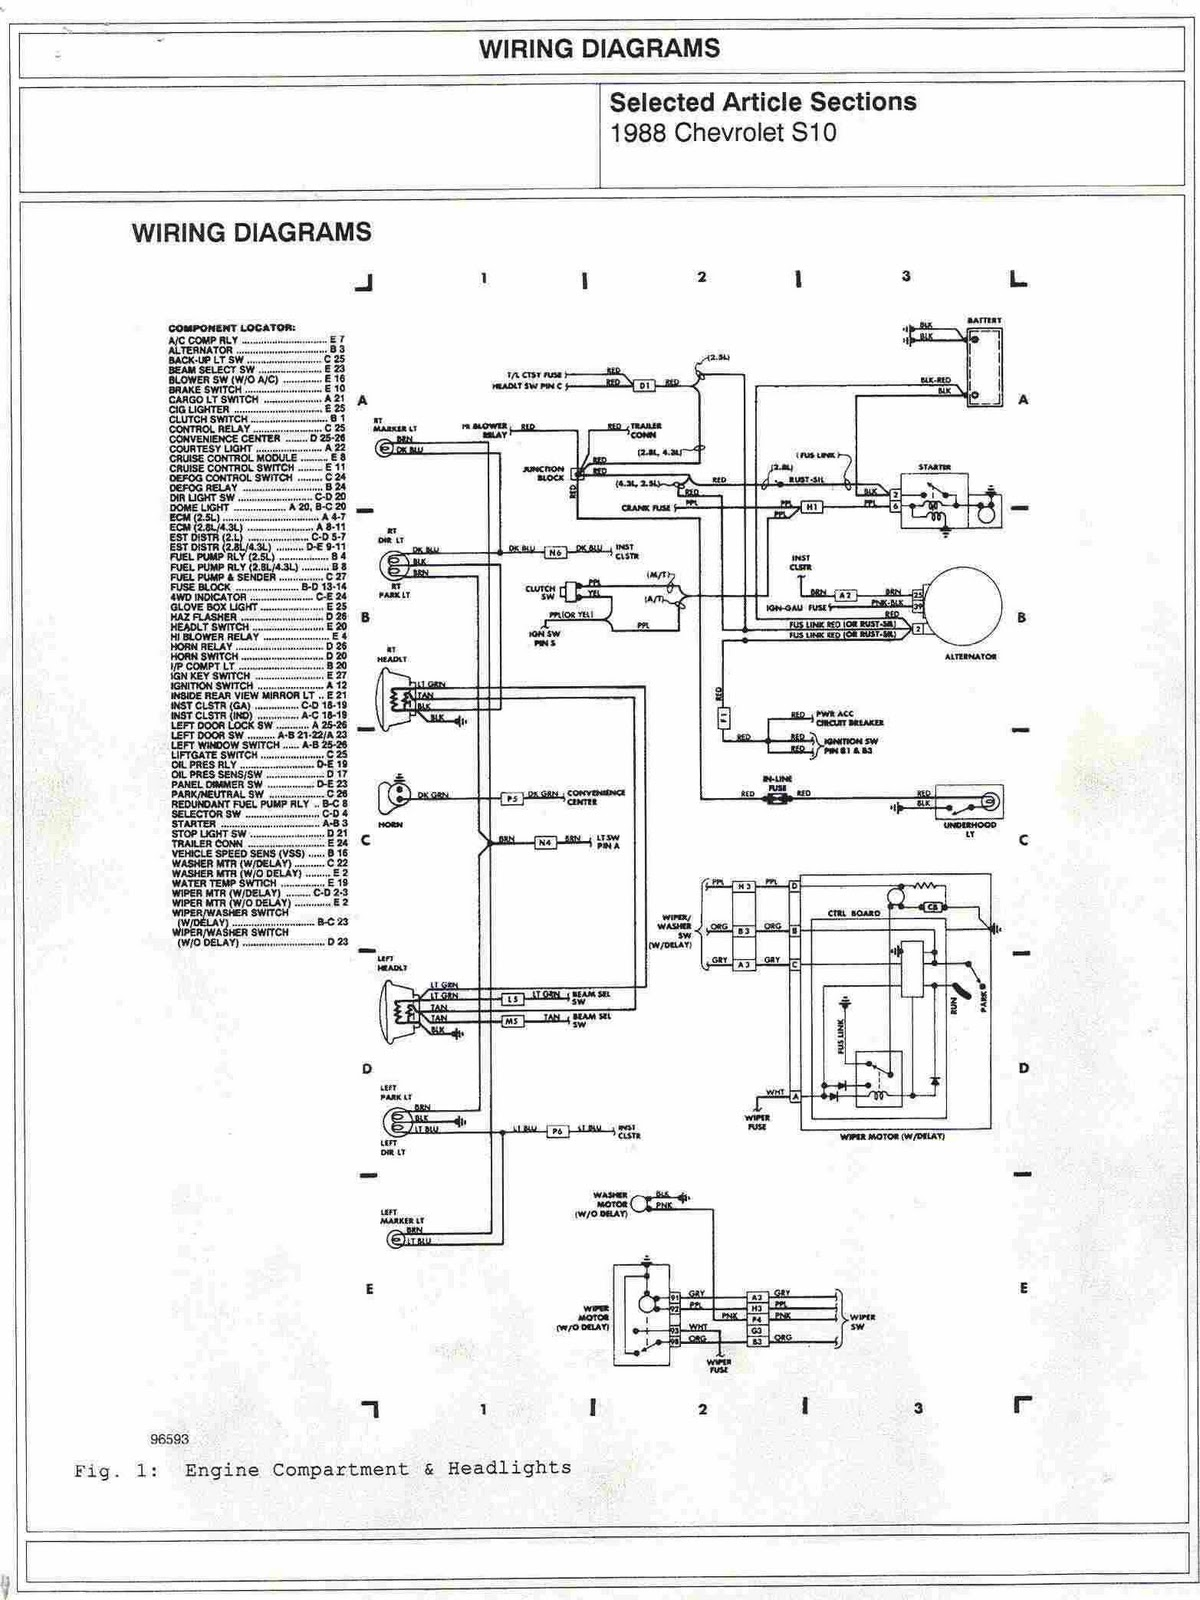 95 el dorado wiring diagram wiring librarydiagram simonand 1988 chevrolet s10 engine compartment and 1987 cadillac [ 1200 x 1600 Pixel ]